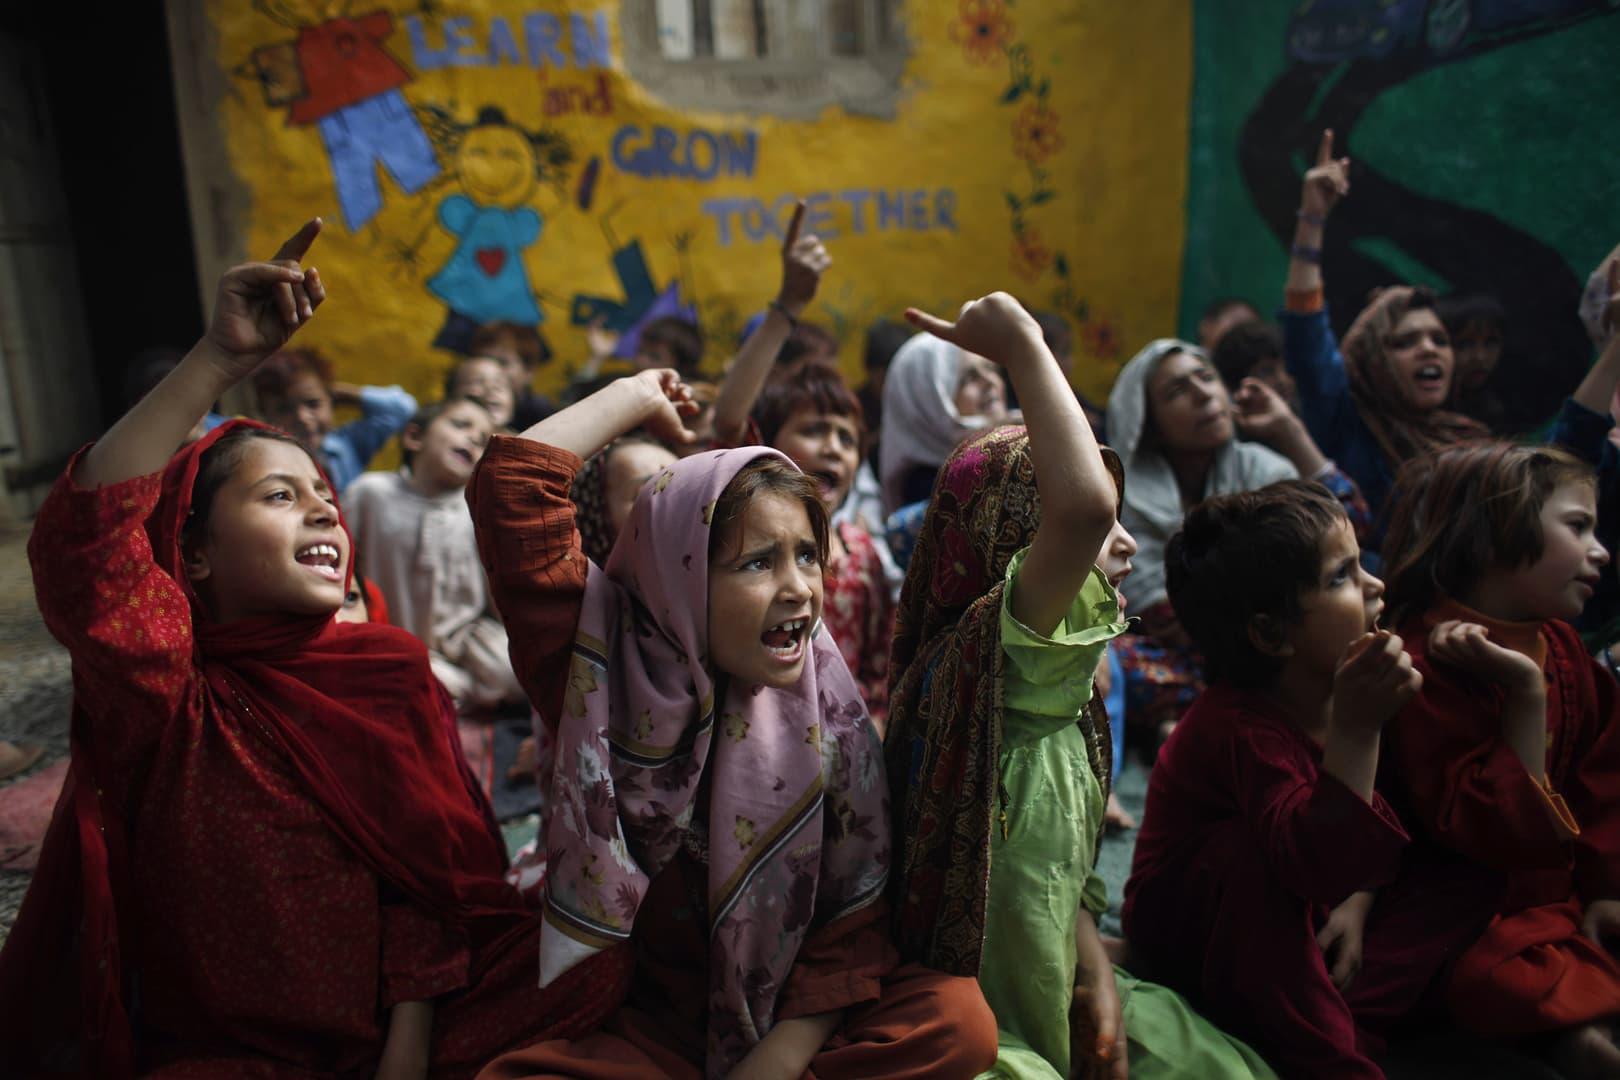 Pakistani schoolgirls, who were displaced with their families from tribal areas due to fighting between militants and the army, listen to their teacher in a poor neighborhood on the outskirts of Islamabad. -AP